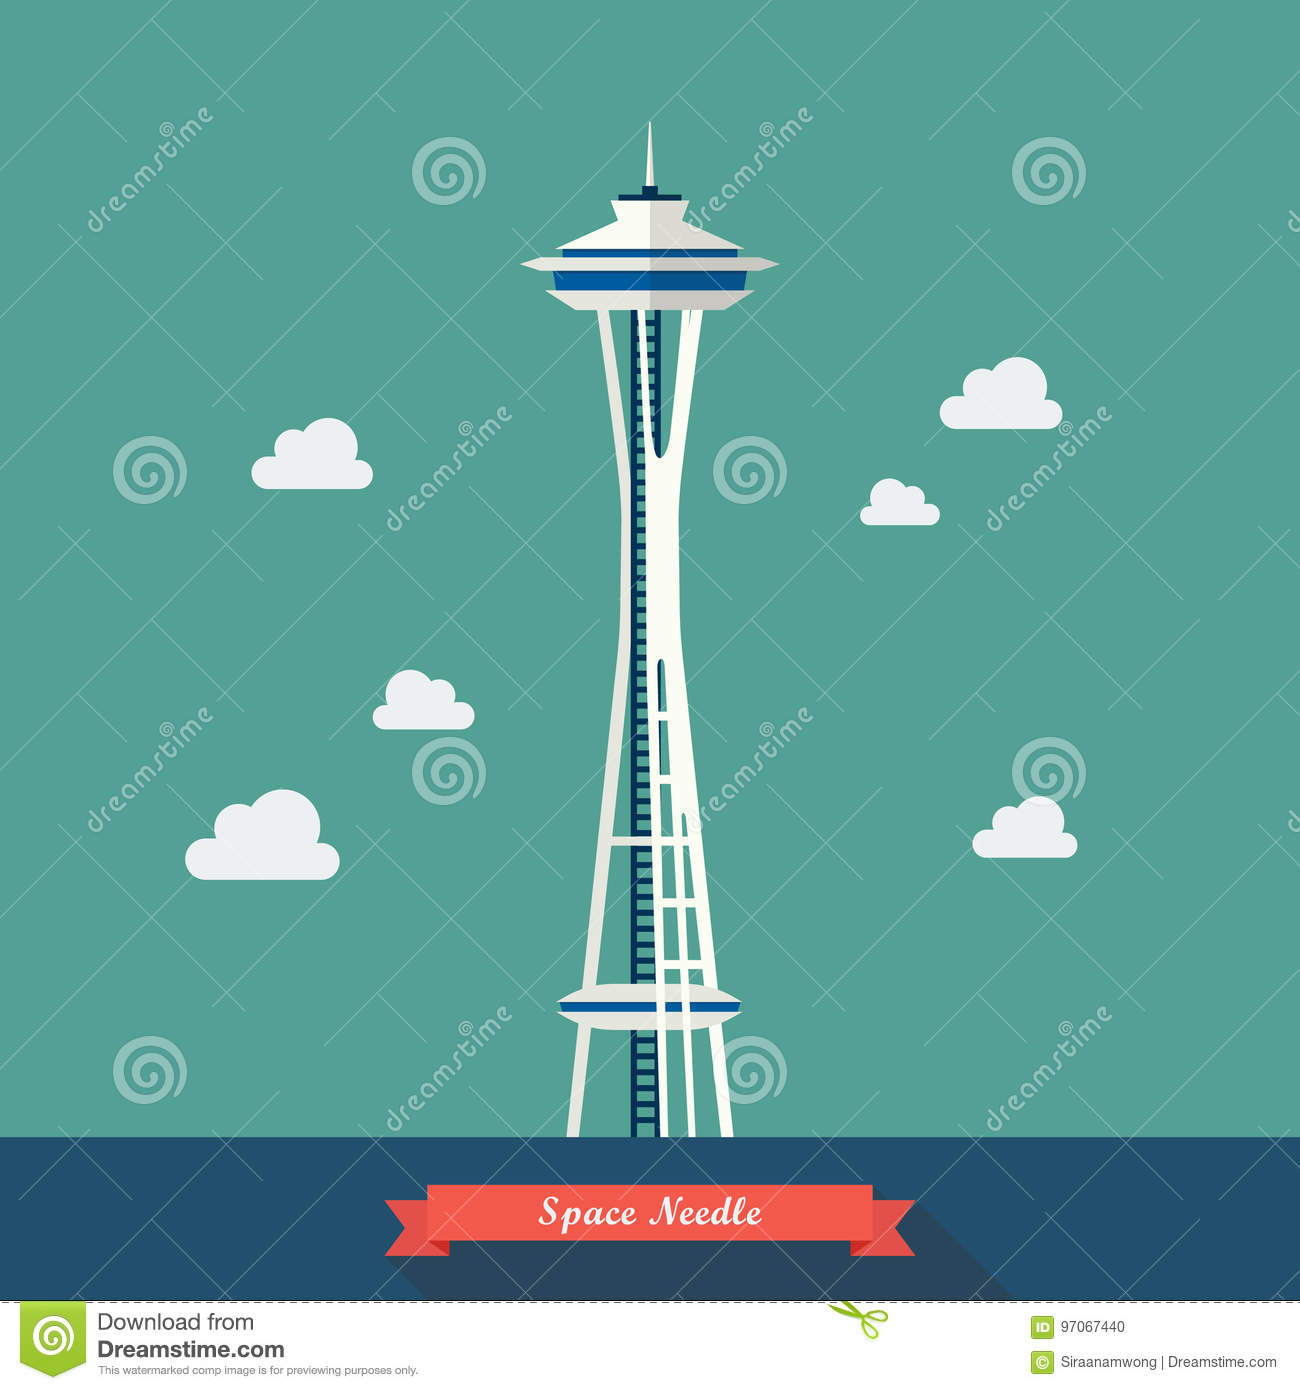 Space Needle. Observation tower